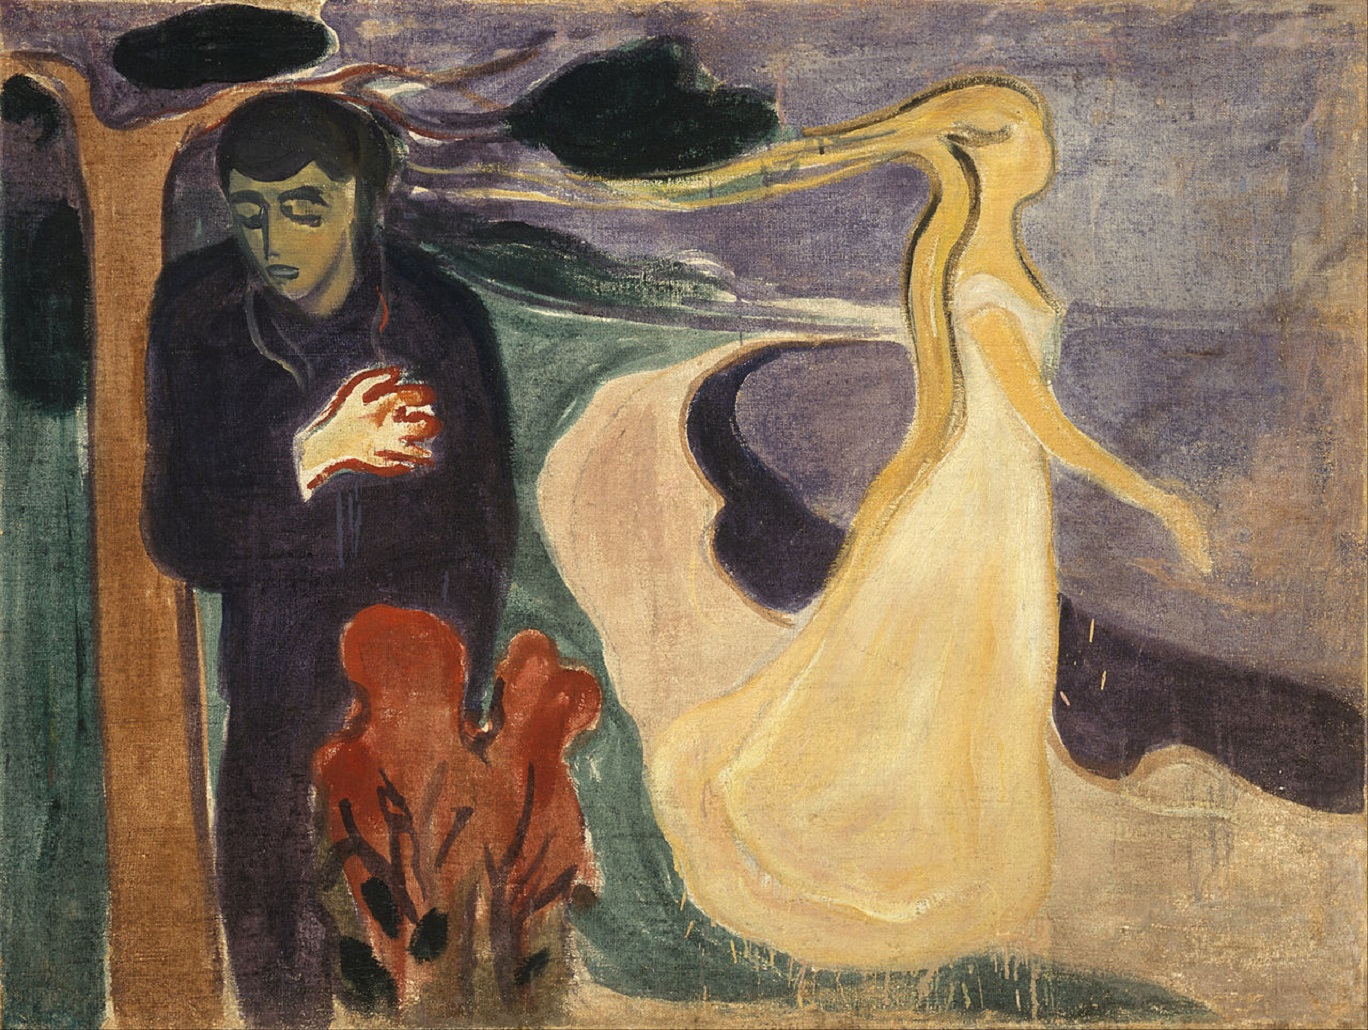 A man grips his heart as a lady in white walks away behind him - painting